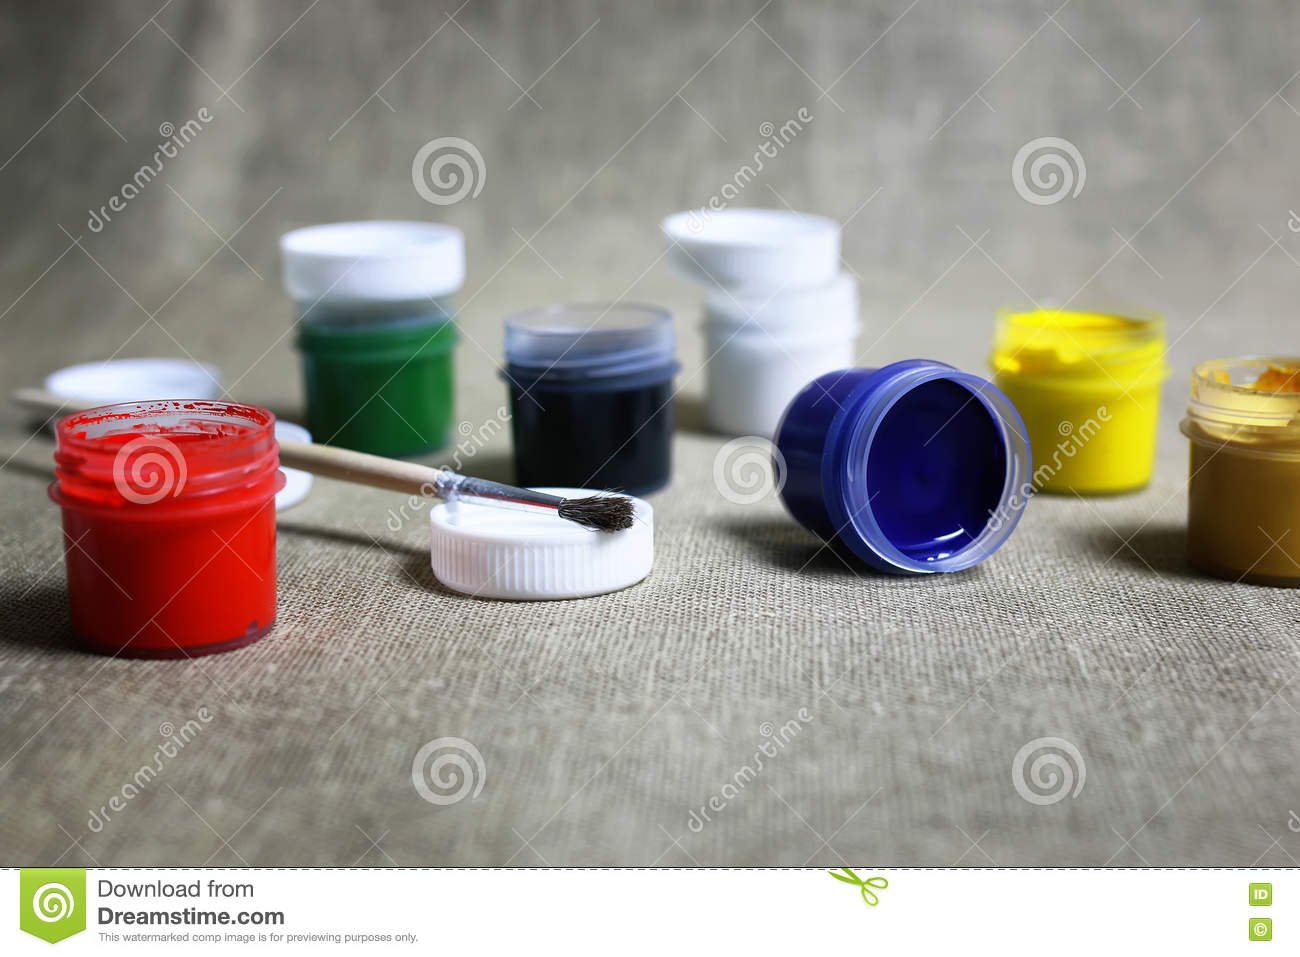 Set of paint cans